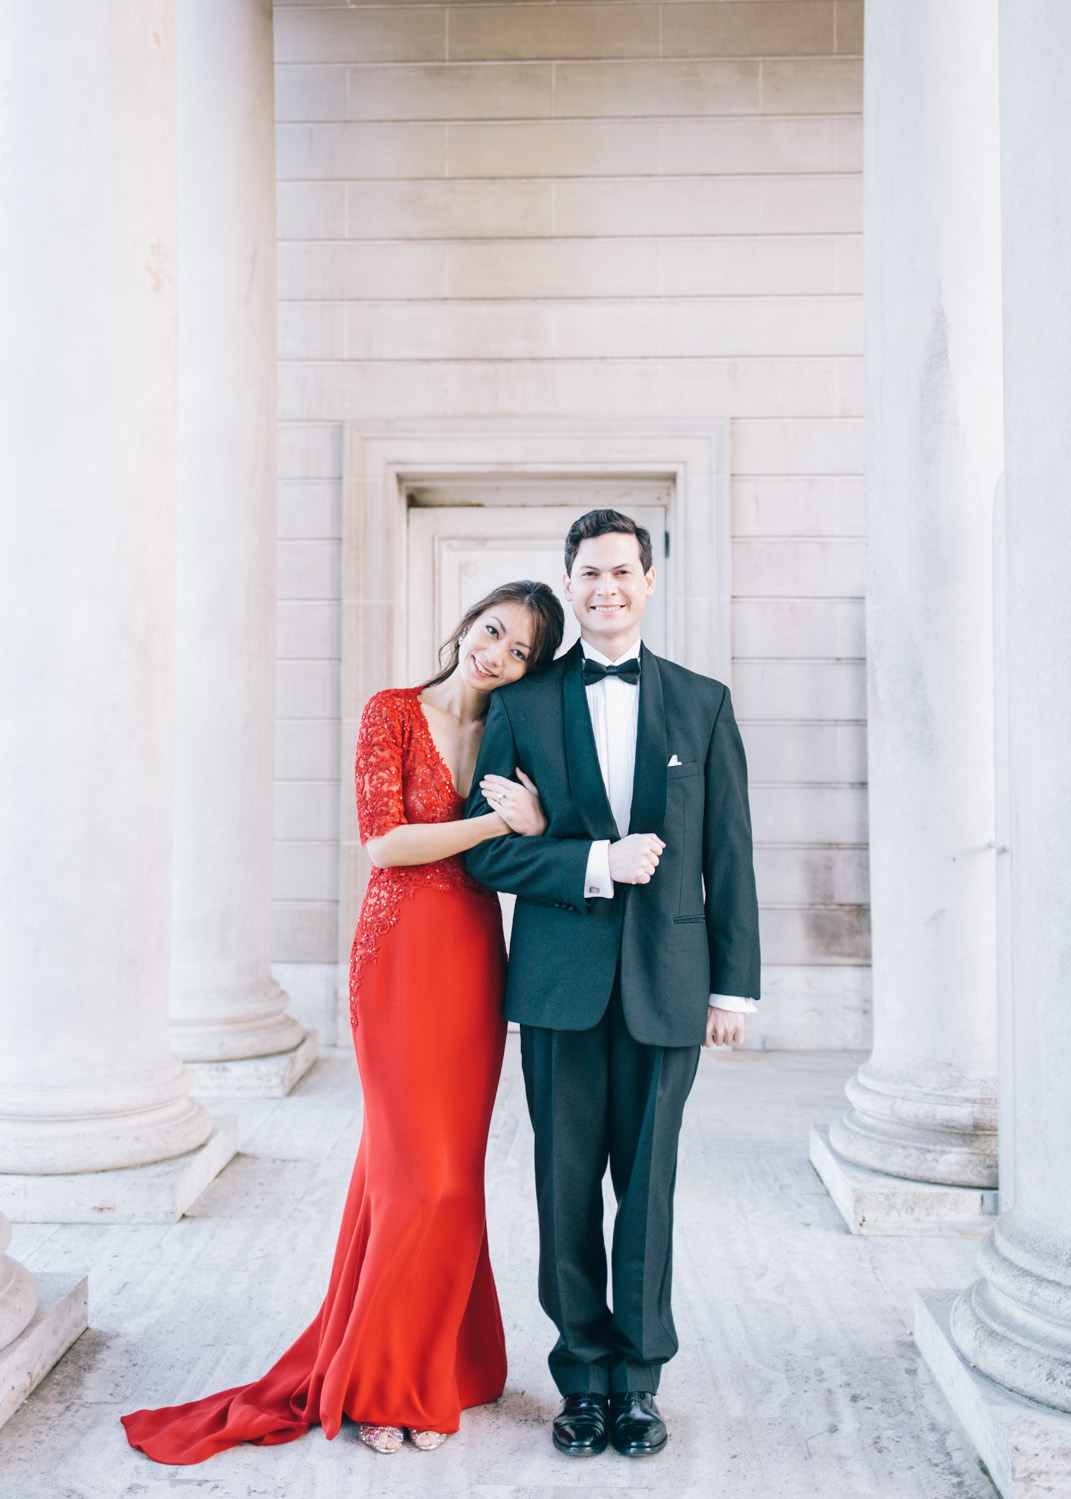 Engagement-Wedding-Photographer-San-Francisco-Engagement-session-Baker-Beach-Palace-of-Fine-Arts-and-Legion-of-Honor-byJBJ-Pictures-12.jpg